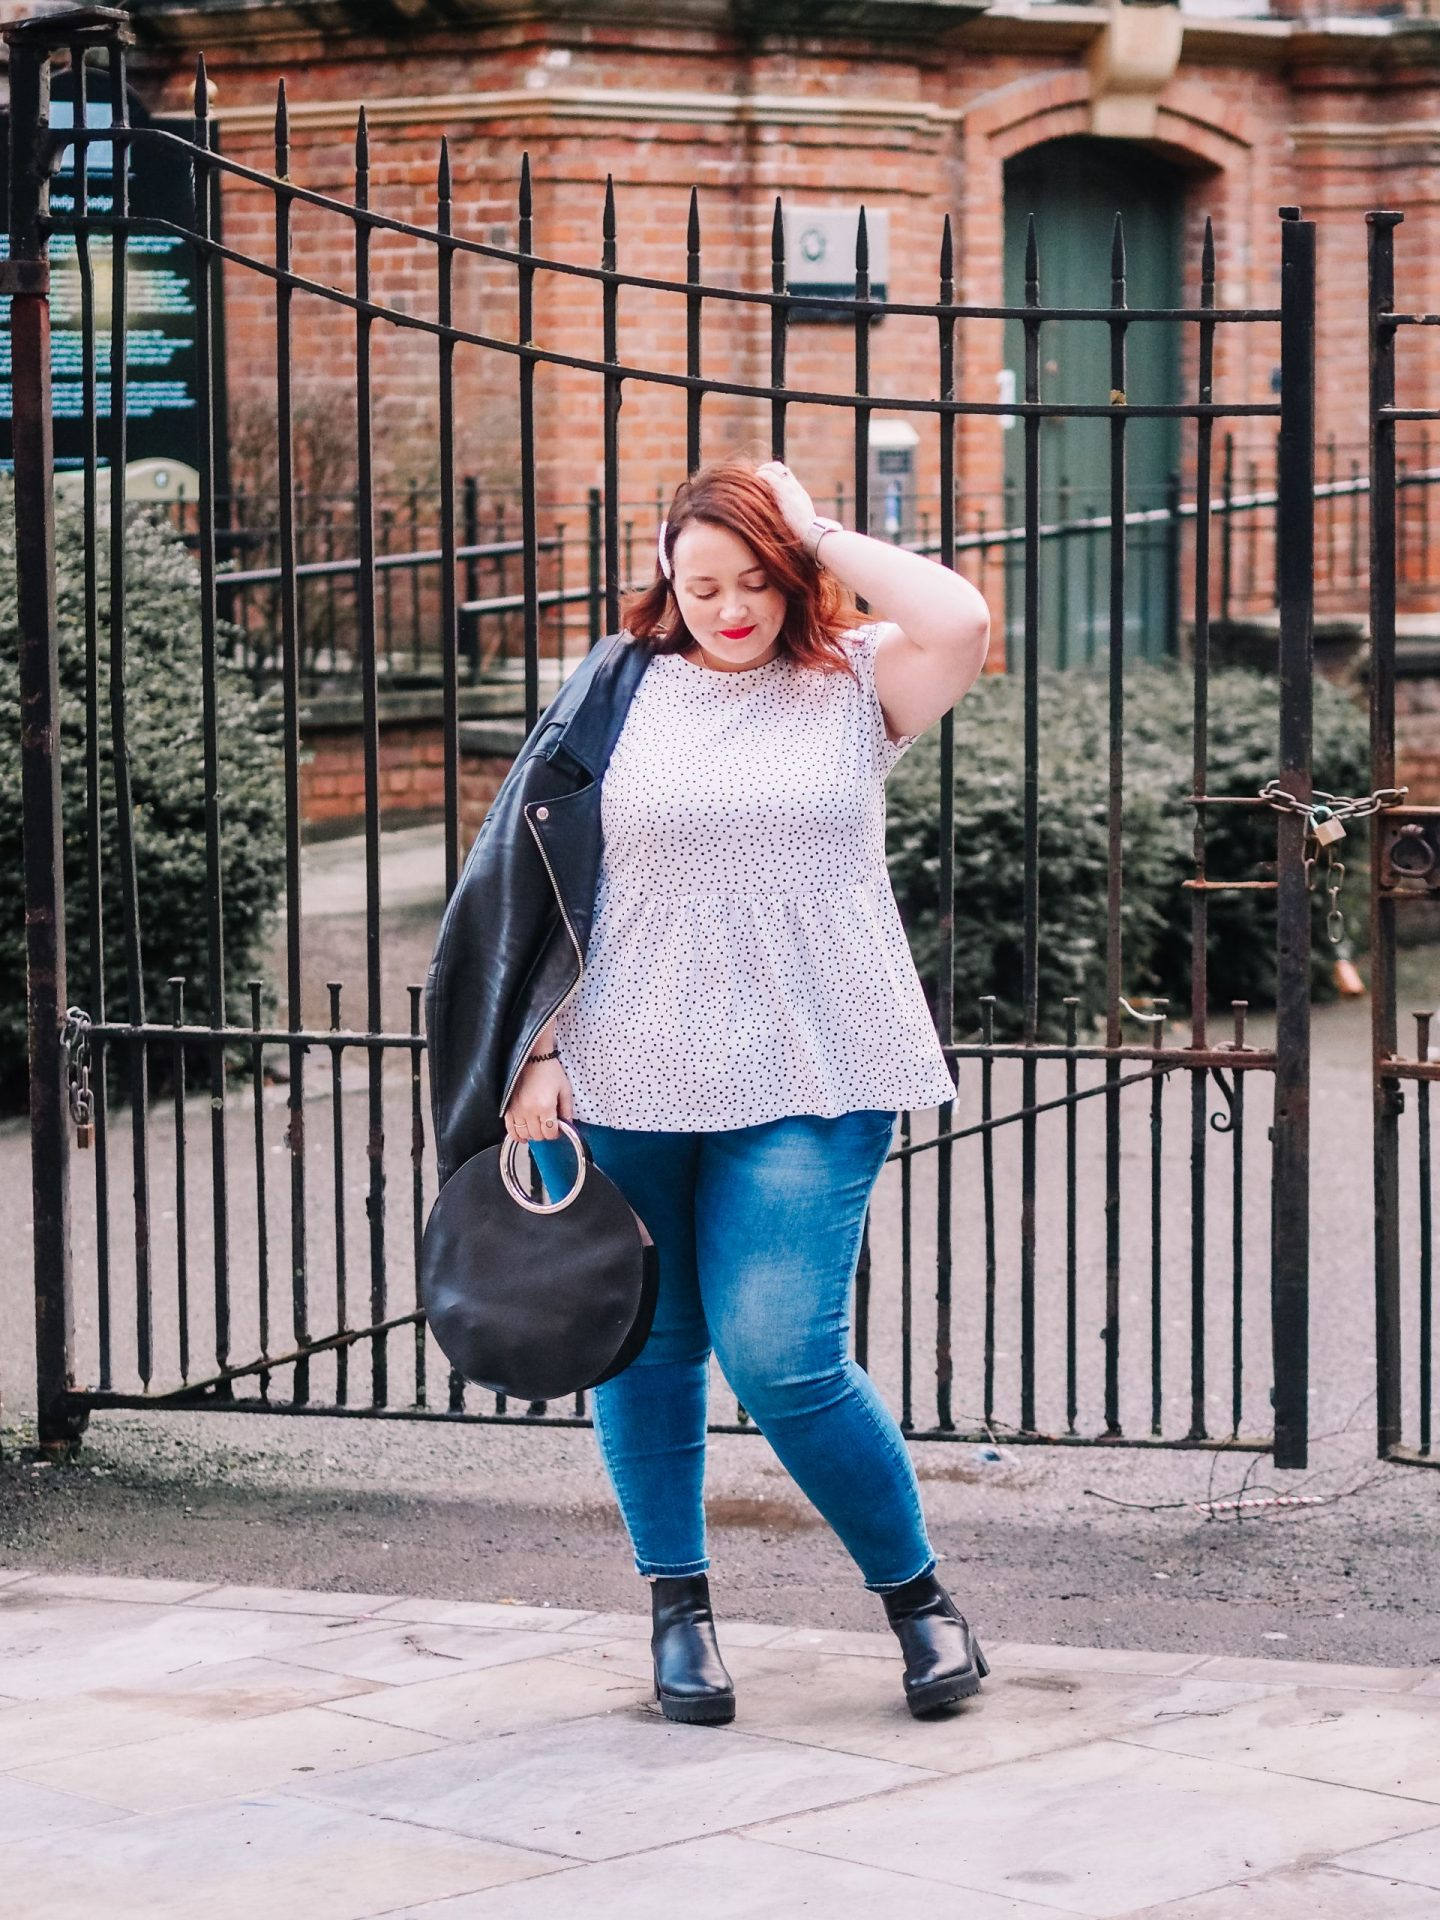 Five Styles Of Jeans To Try & Three Ways To Wear Jeans If You're Curvy